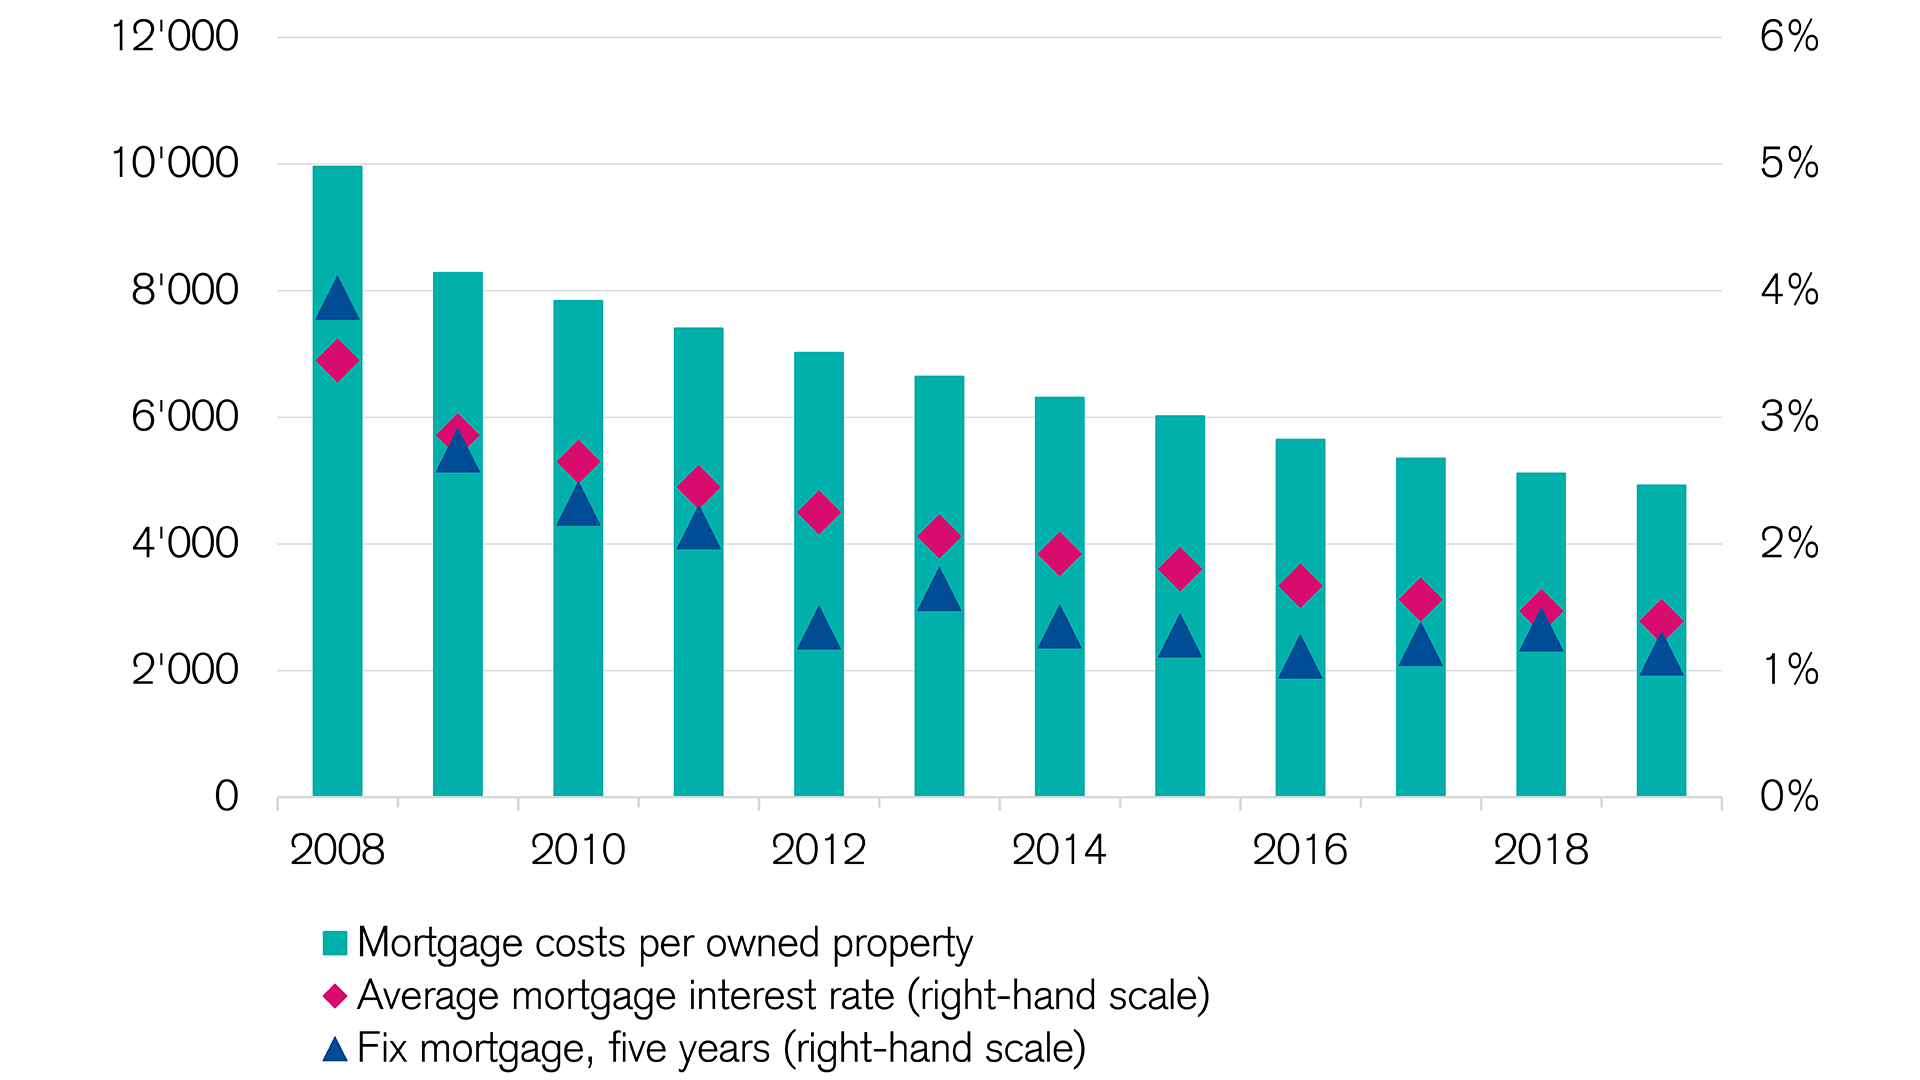 Housing market: Mortgage interest costs remain low